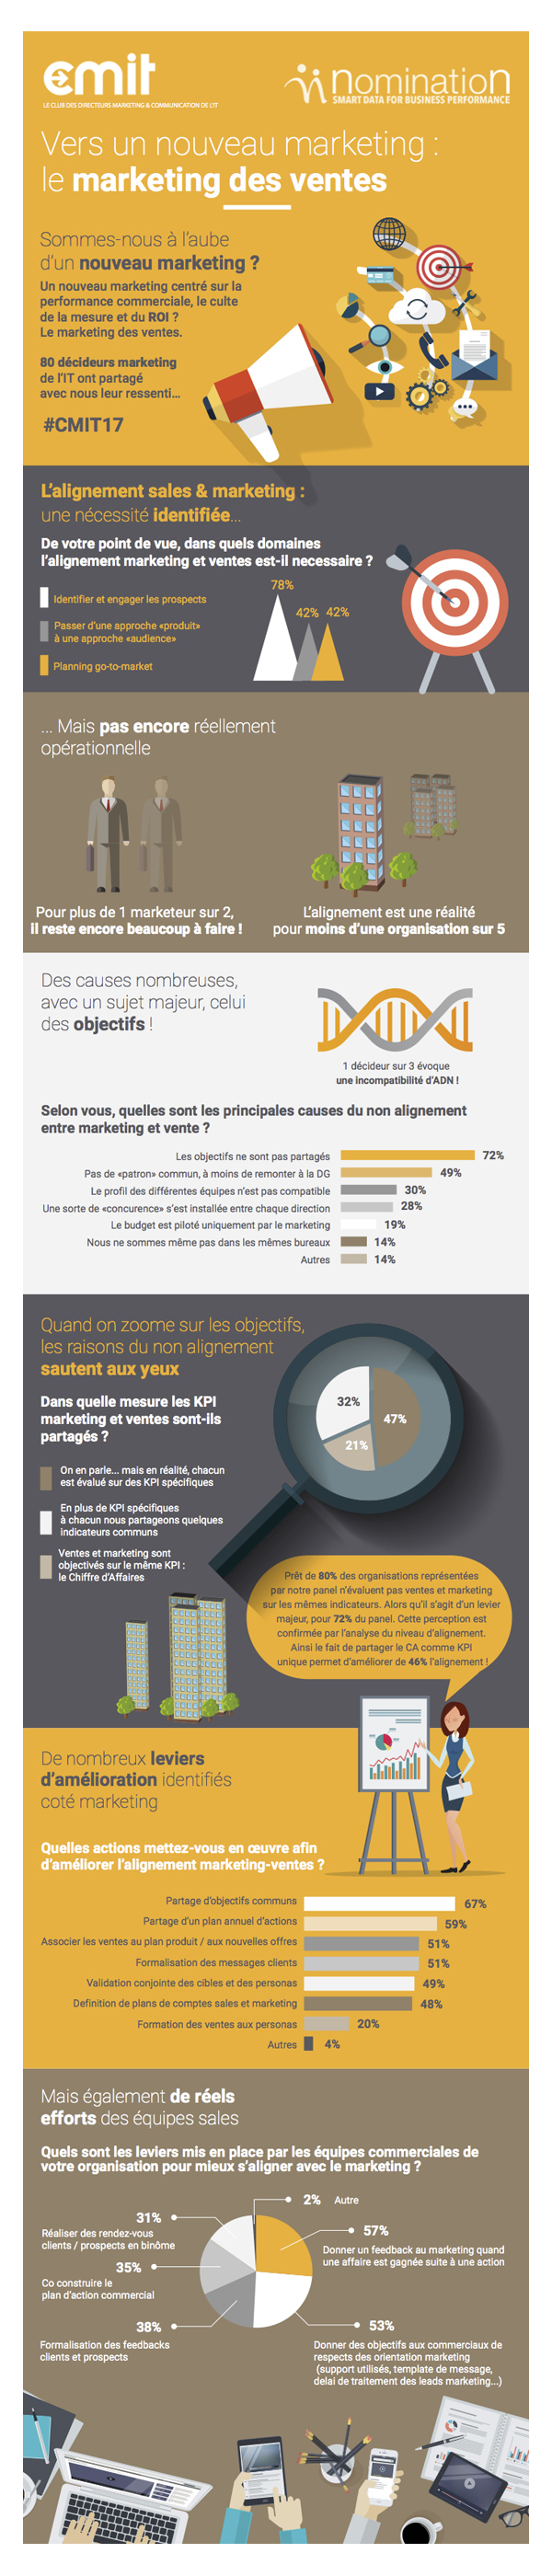 CMIT_Data_Marketing_des_ventes partie A